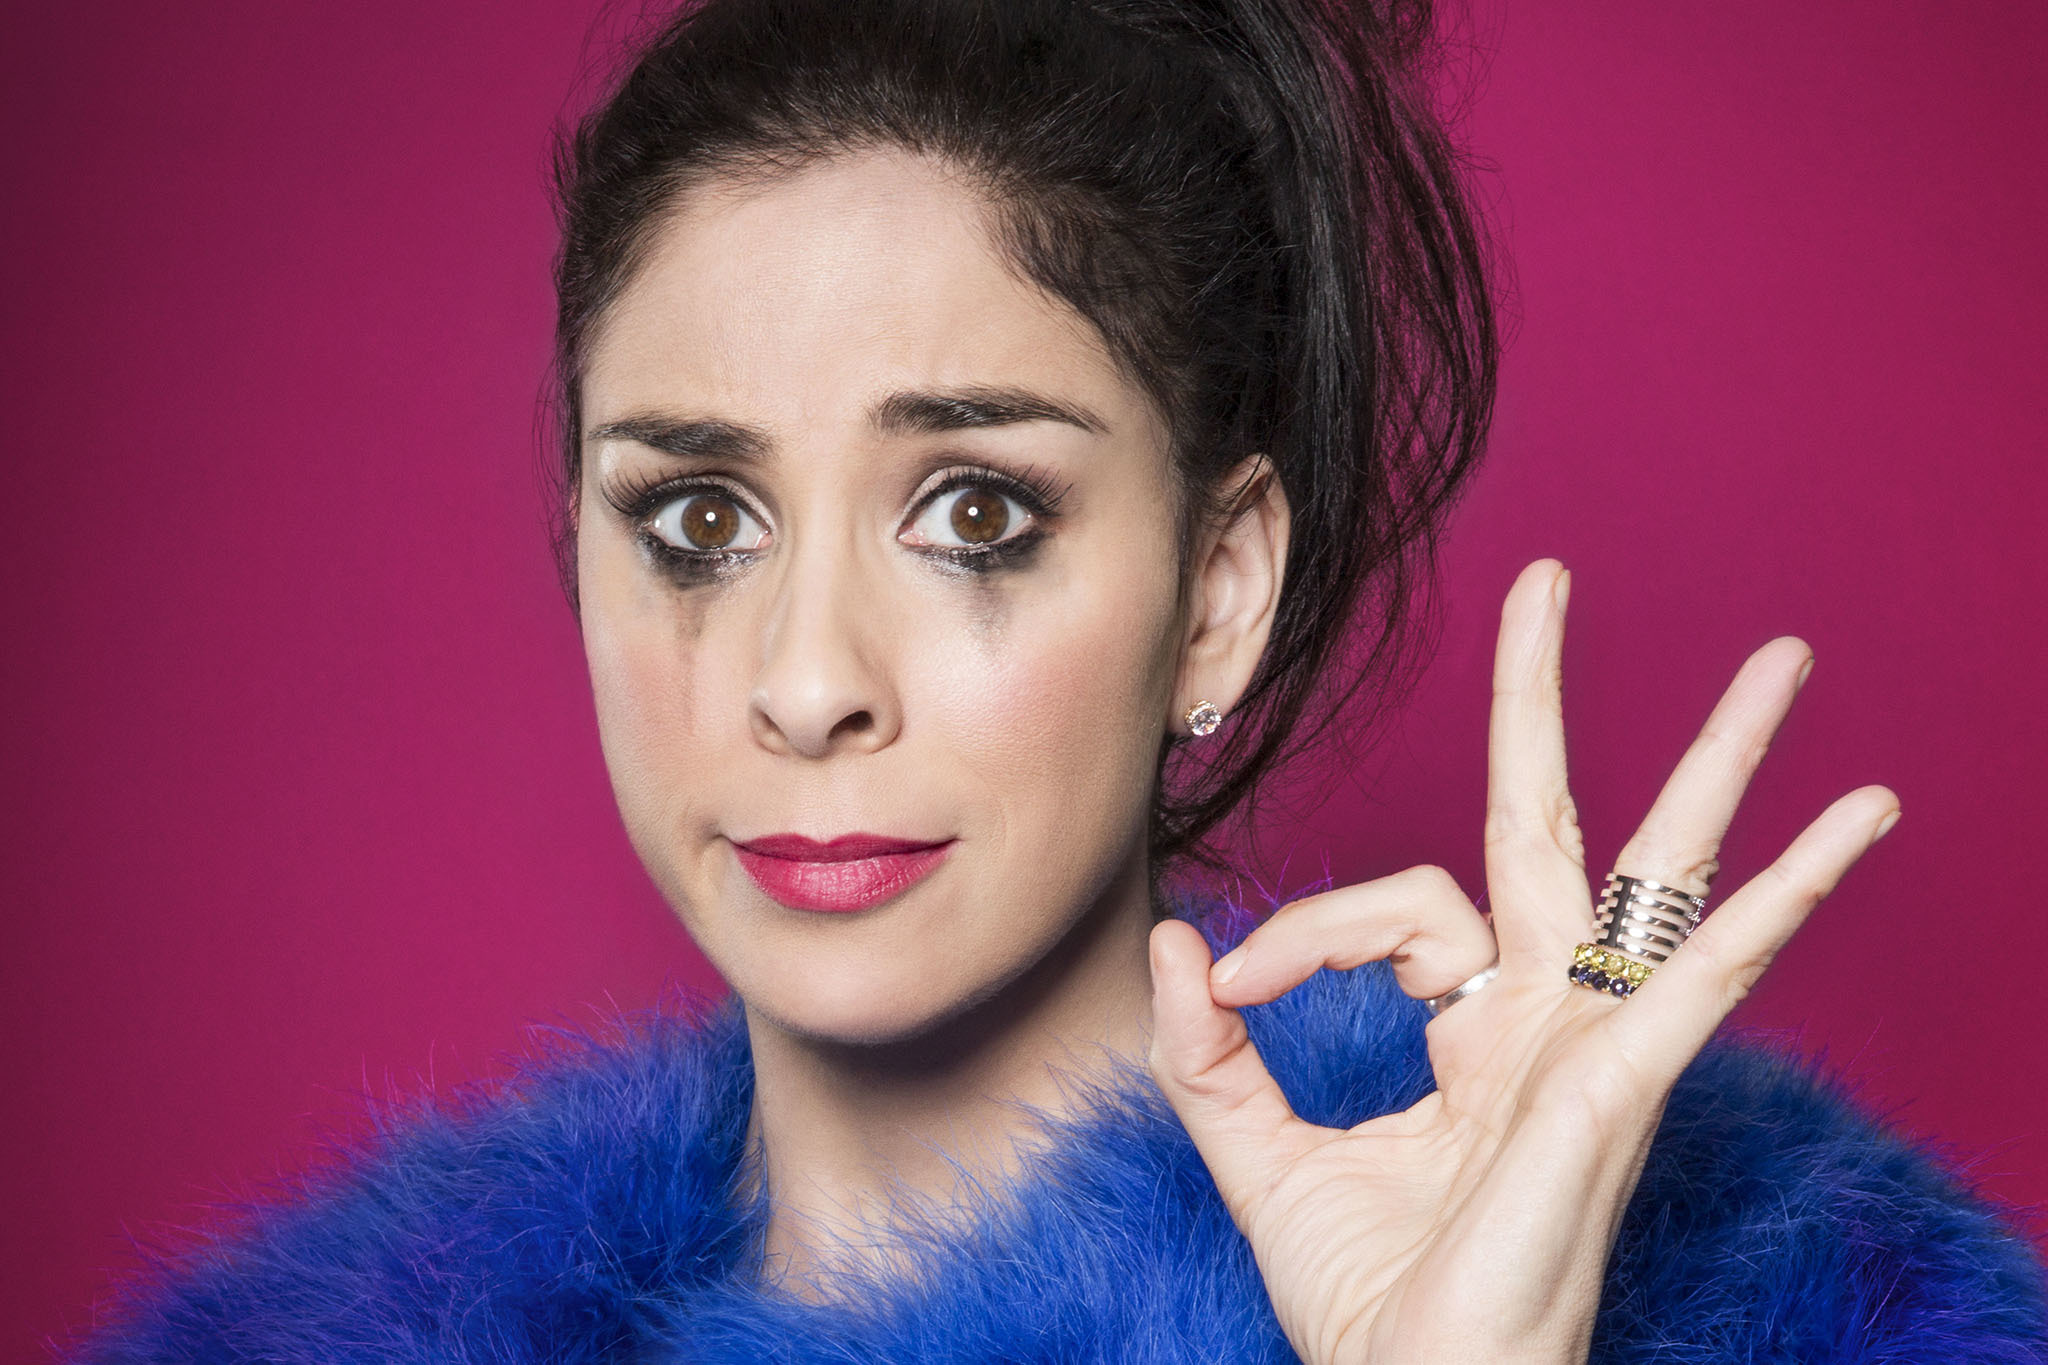 Sarah Silverman on freeing the nipple, smoking pot and going full-drama